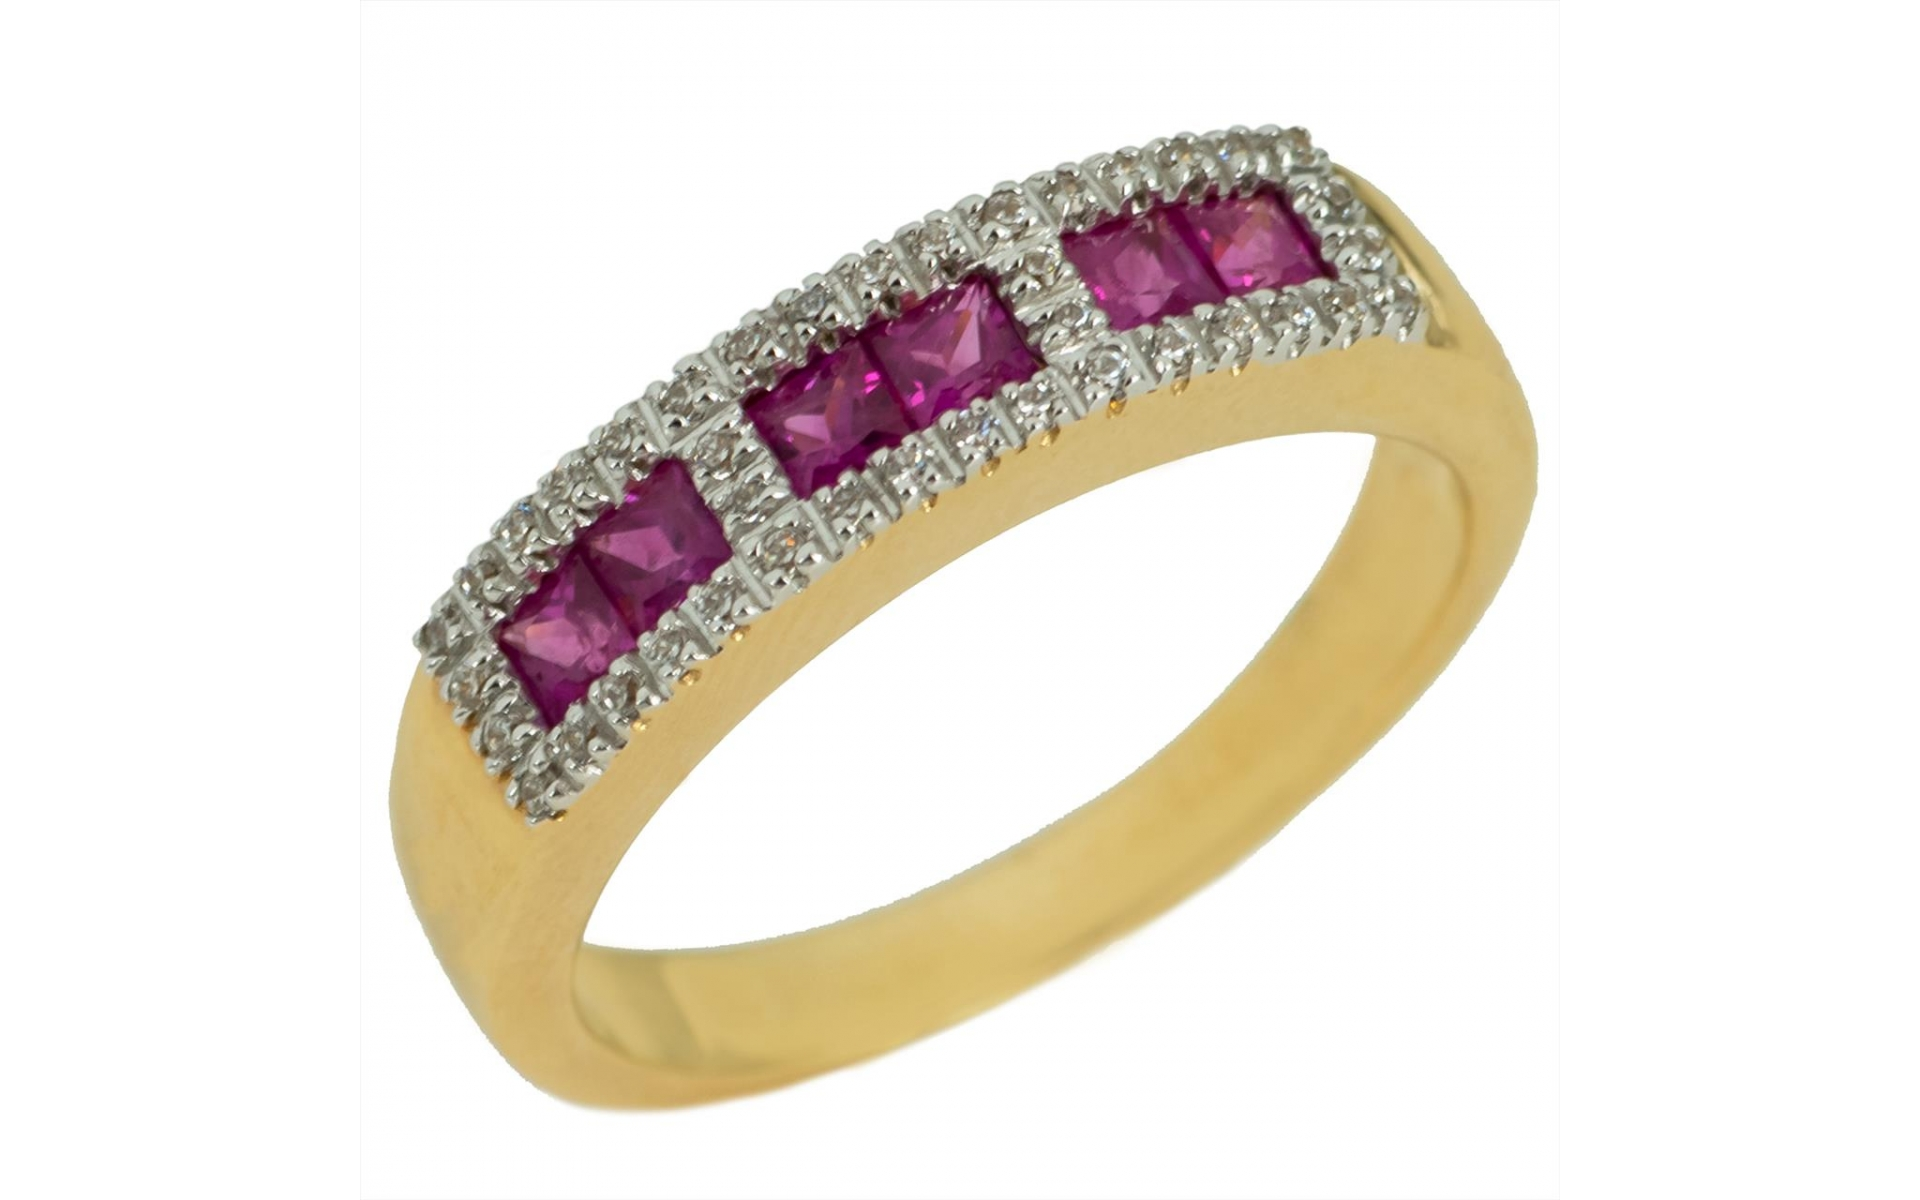 Modern Ruby 1 50 Ct Ring In 14k Yellow Gold Set With Zirconia Stones